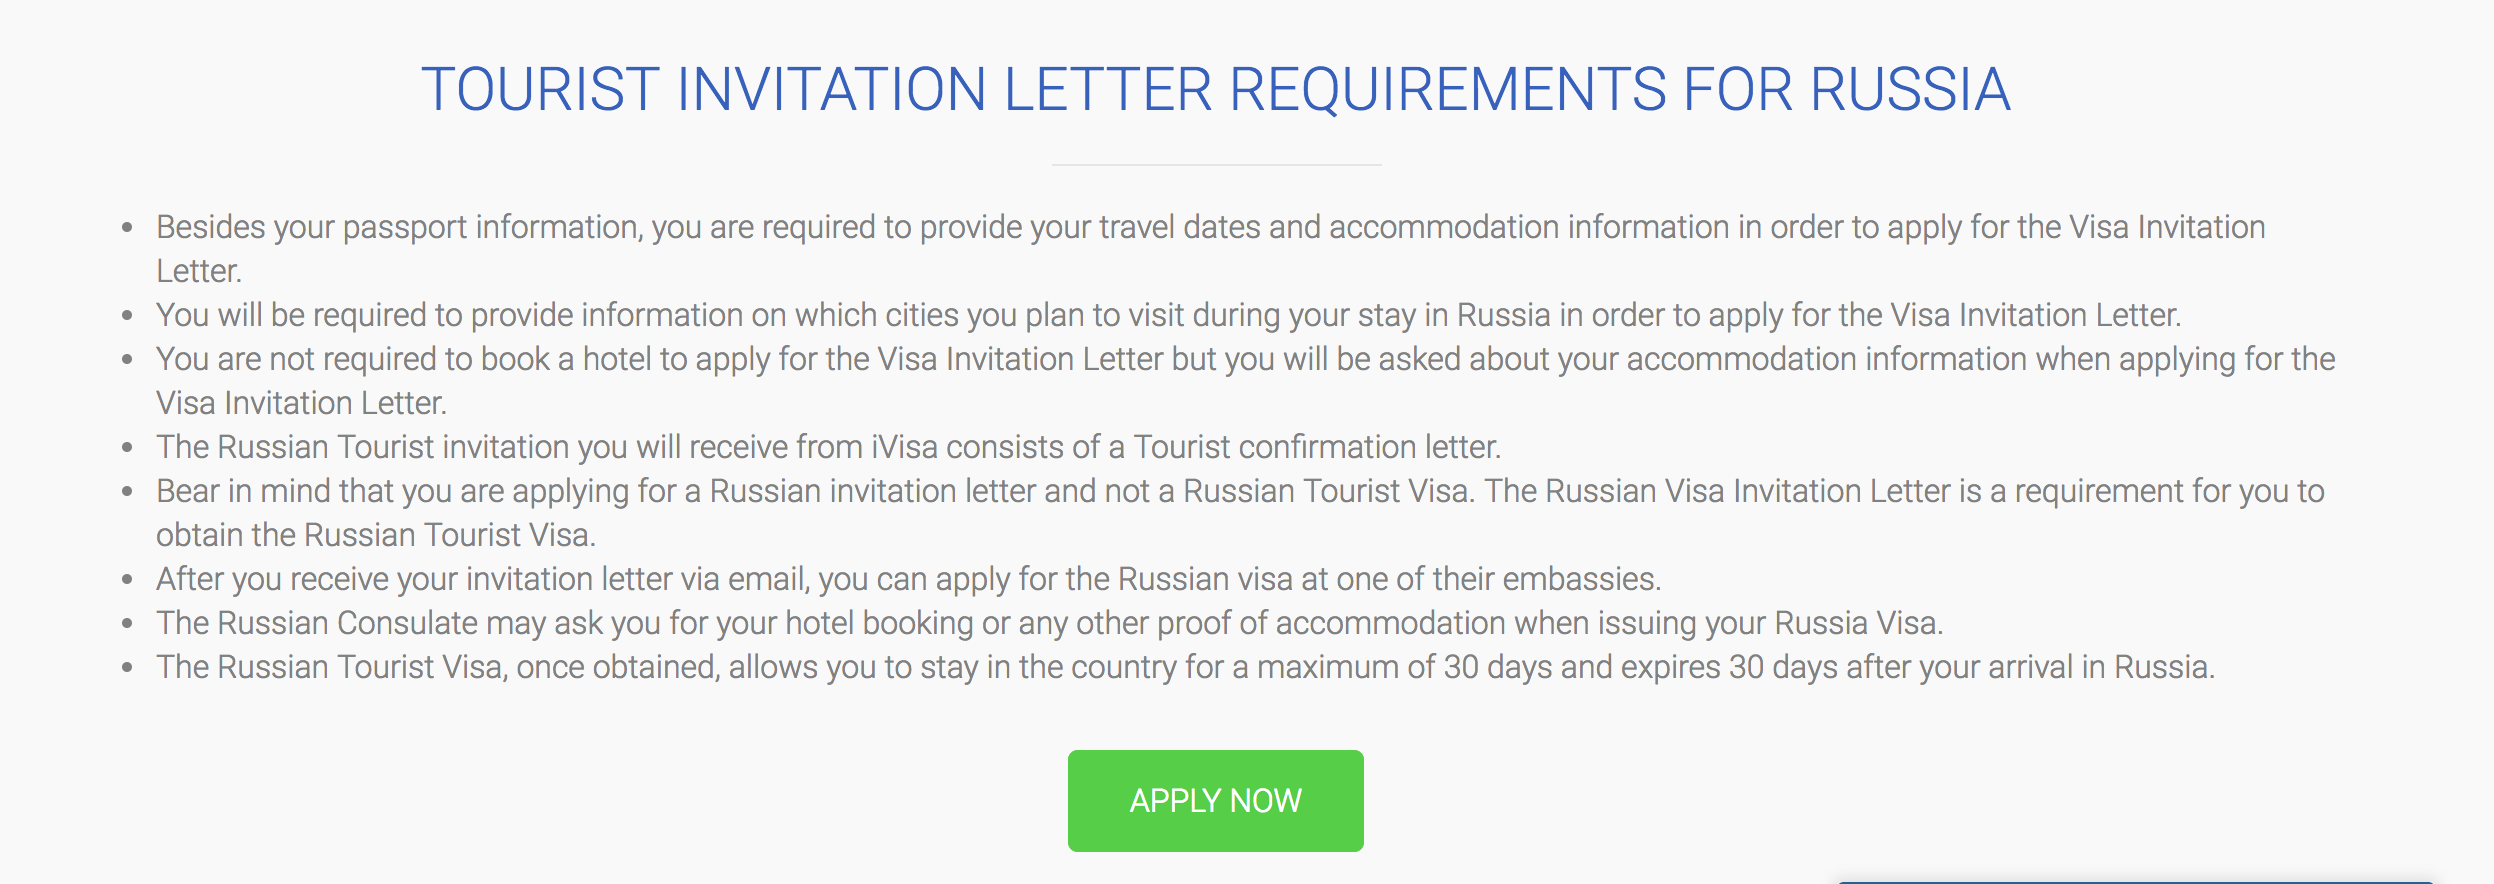 How To Get A Russian Tourist Visa For Philippines Passport